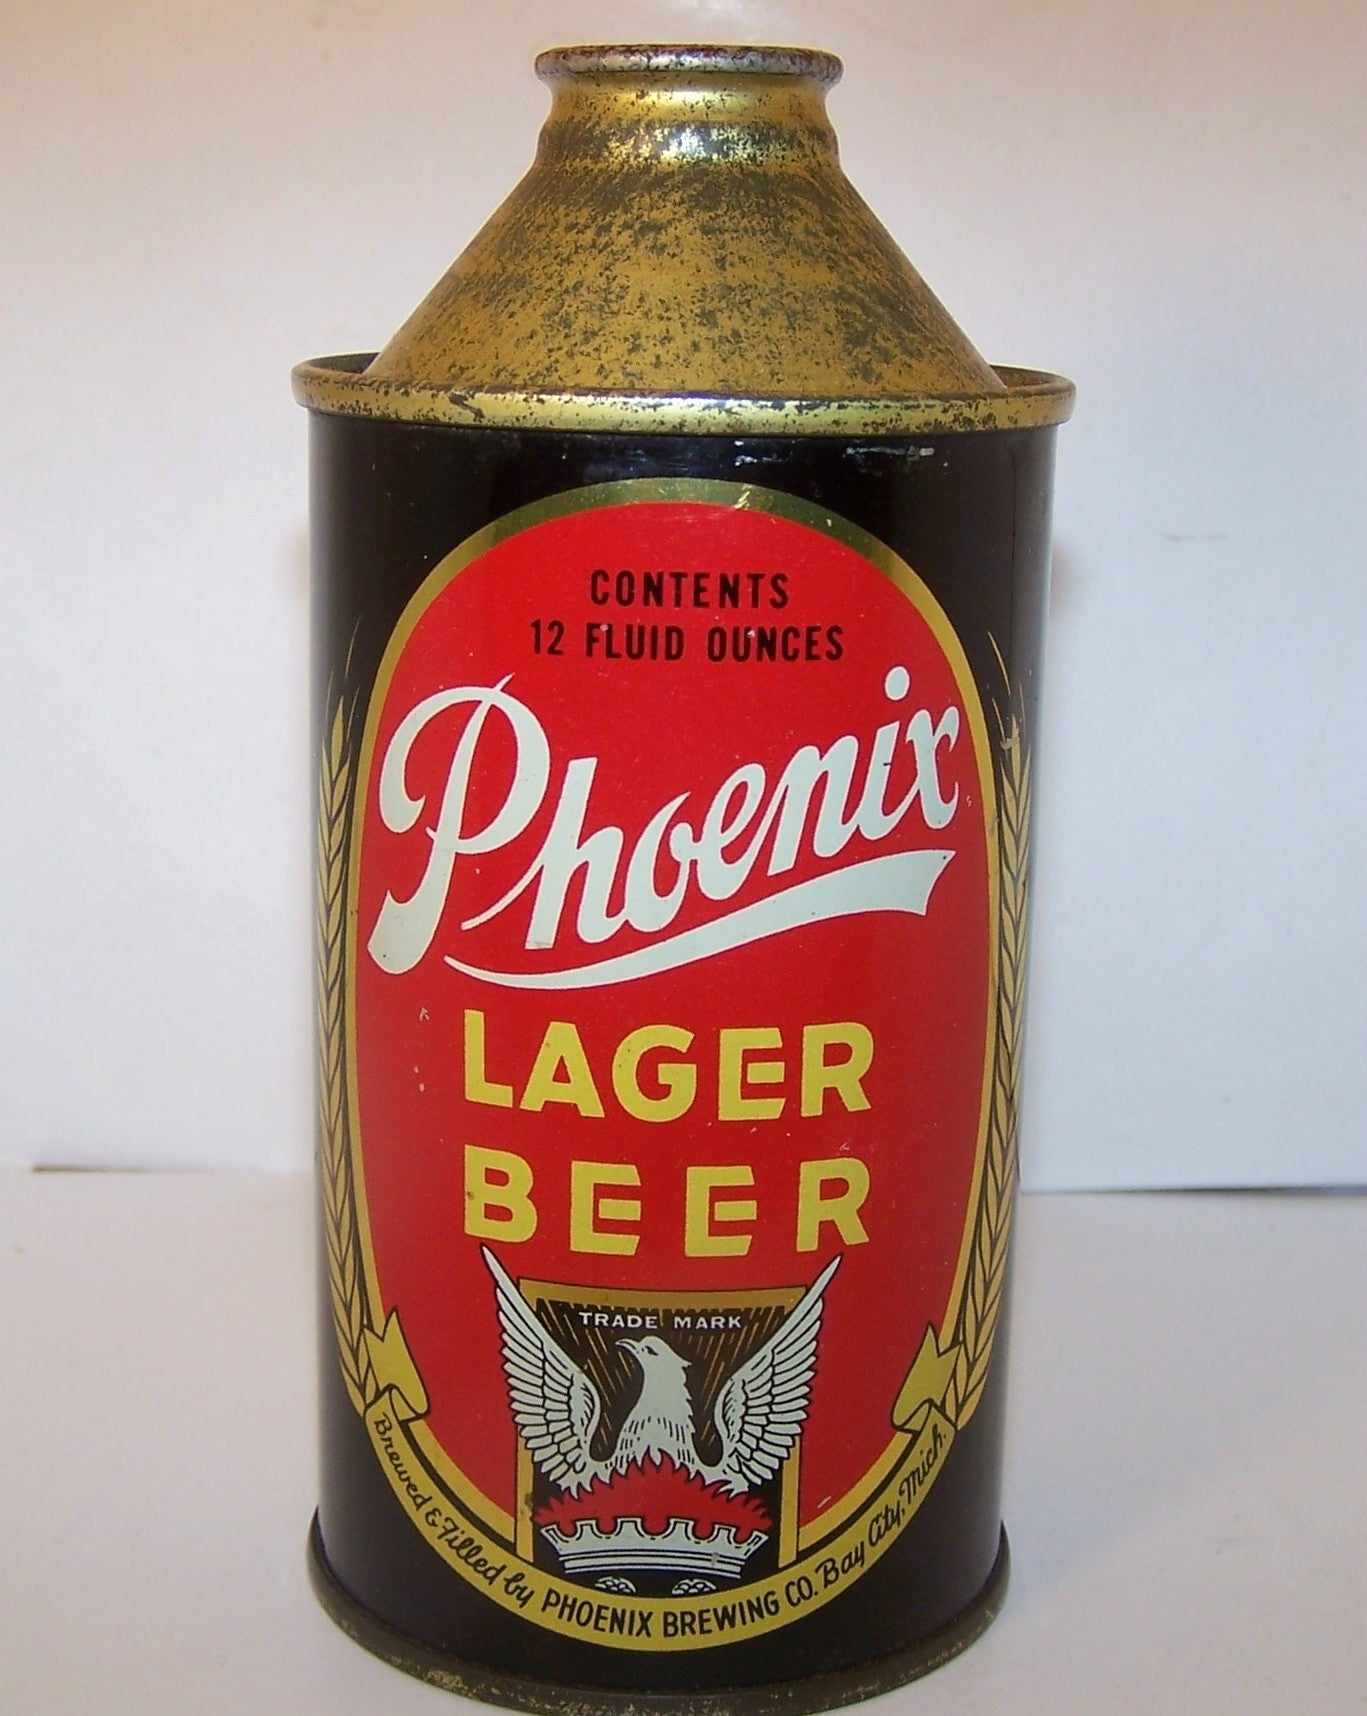 Phoenix Lager Beer, USBC 179-5, Grade 1 to 1/1+ Sold 2/25/15